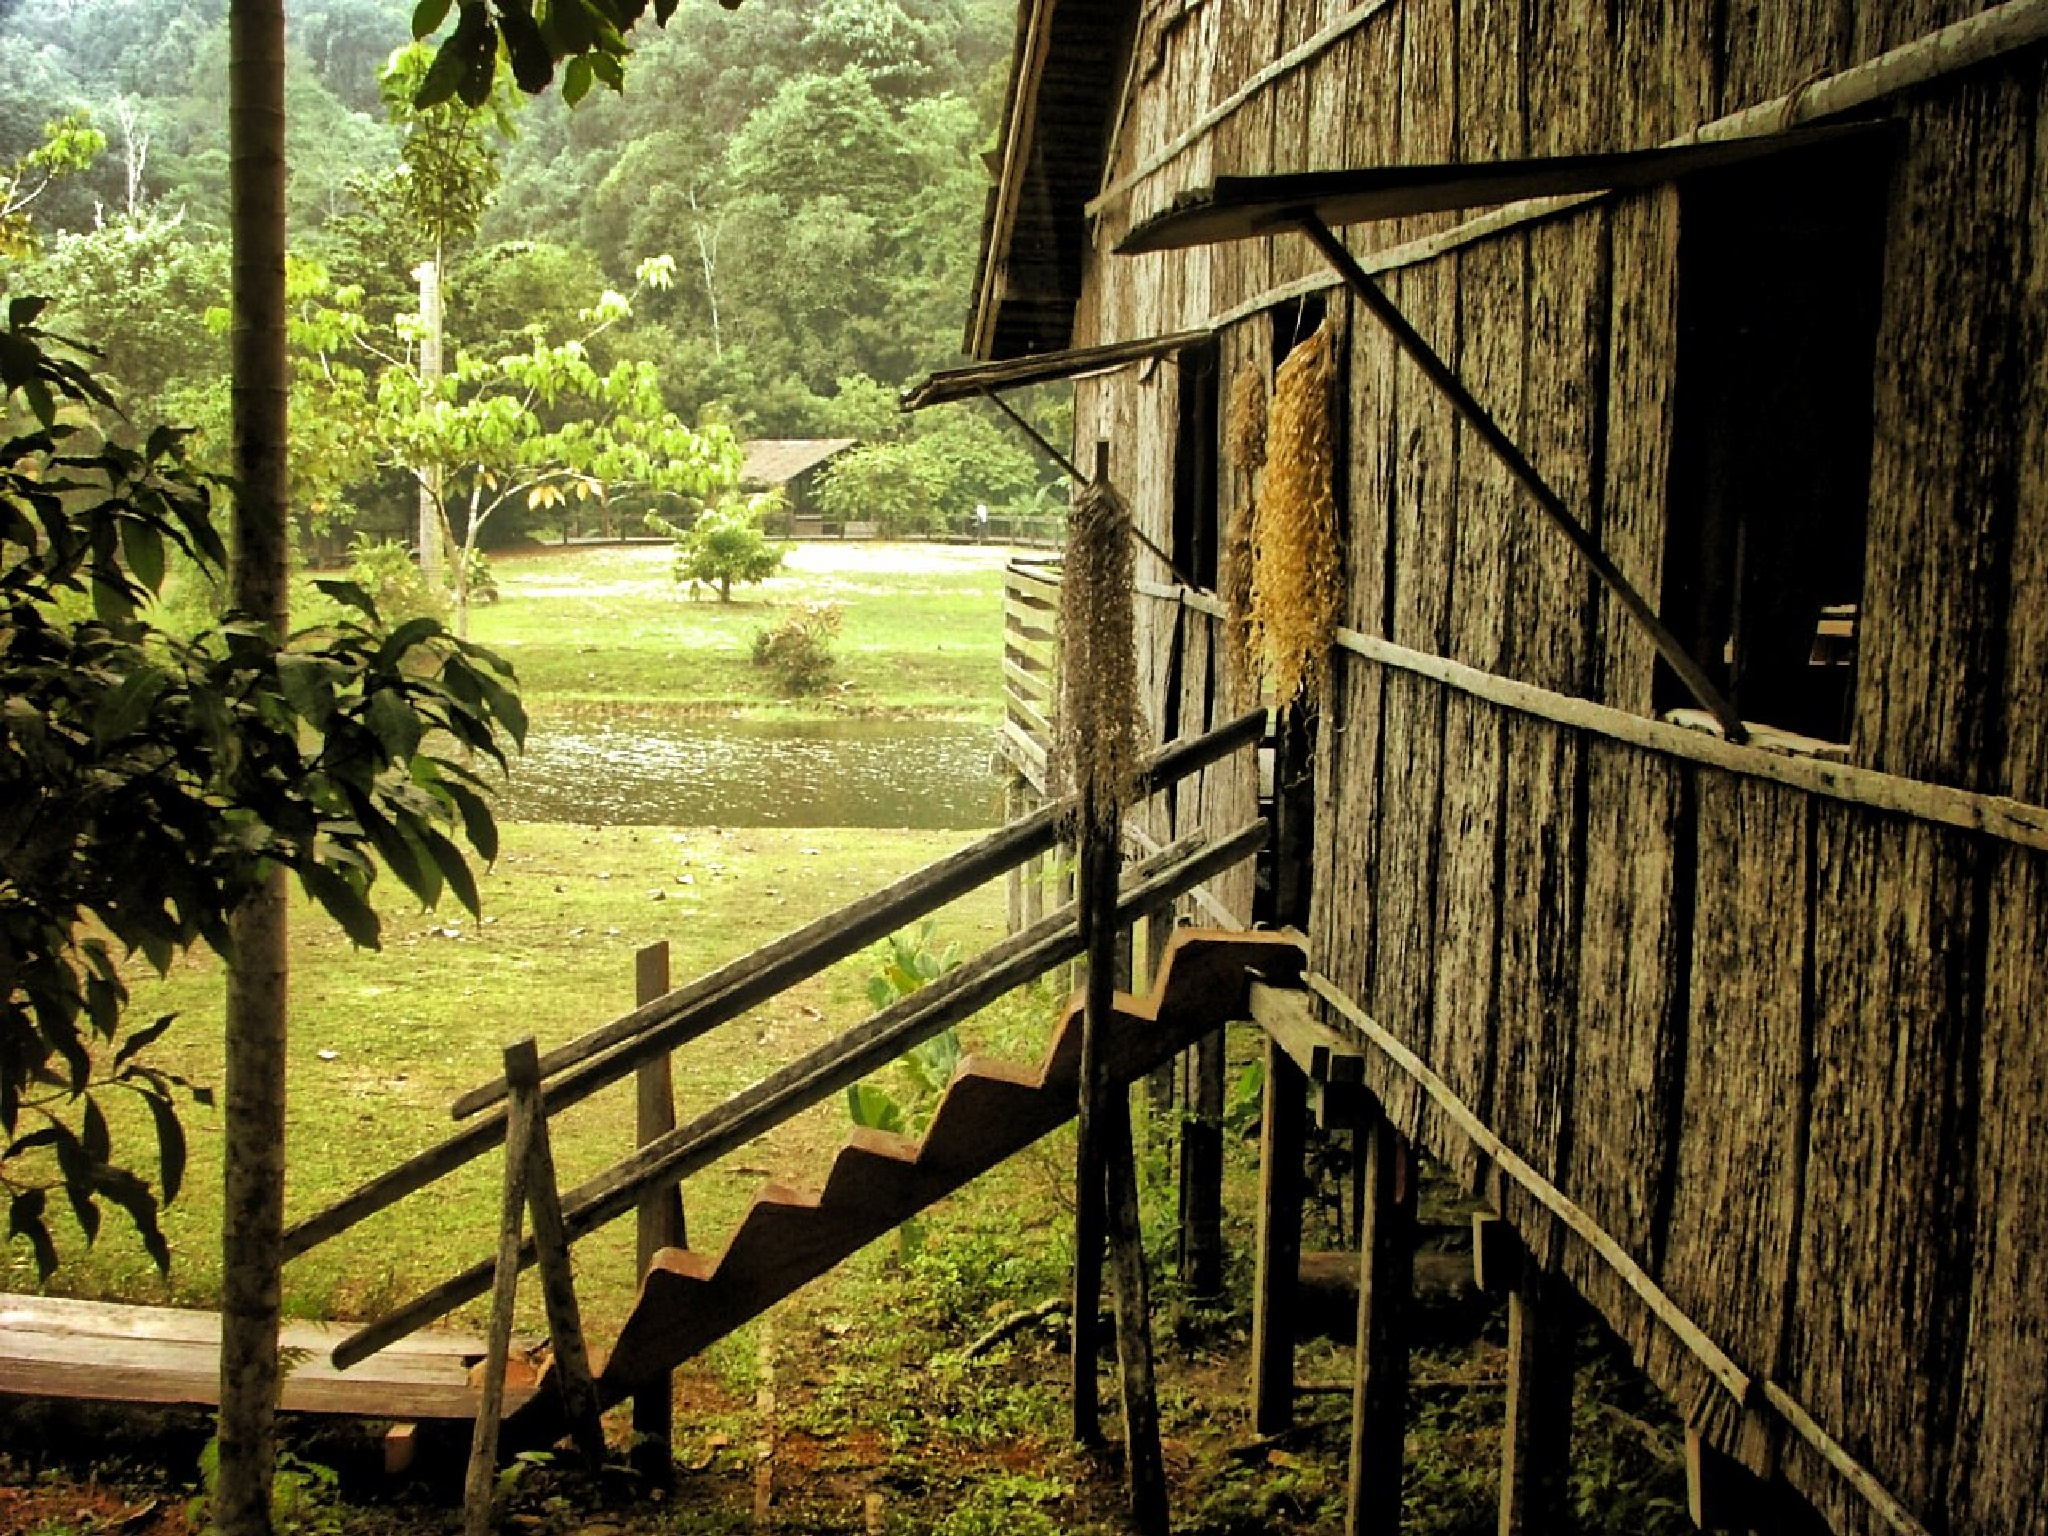 Longhouse Borneo Sarawak East Malasya  by Theo Tellings